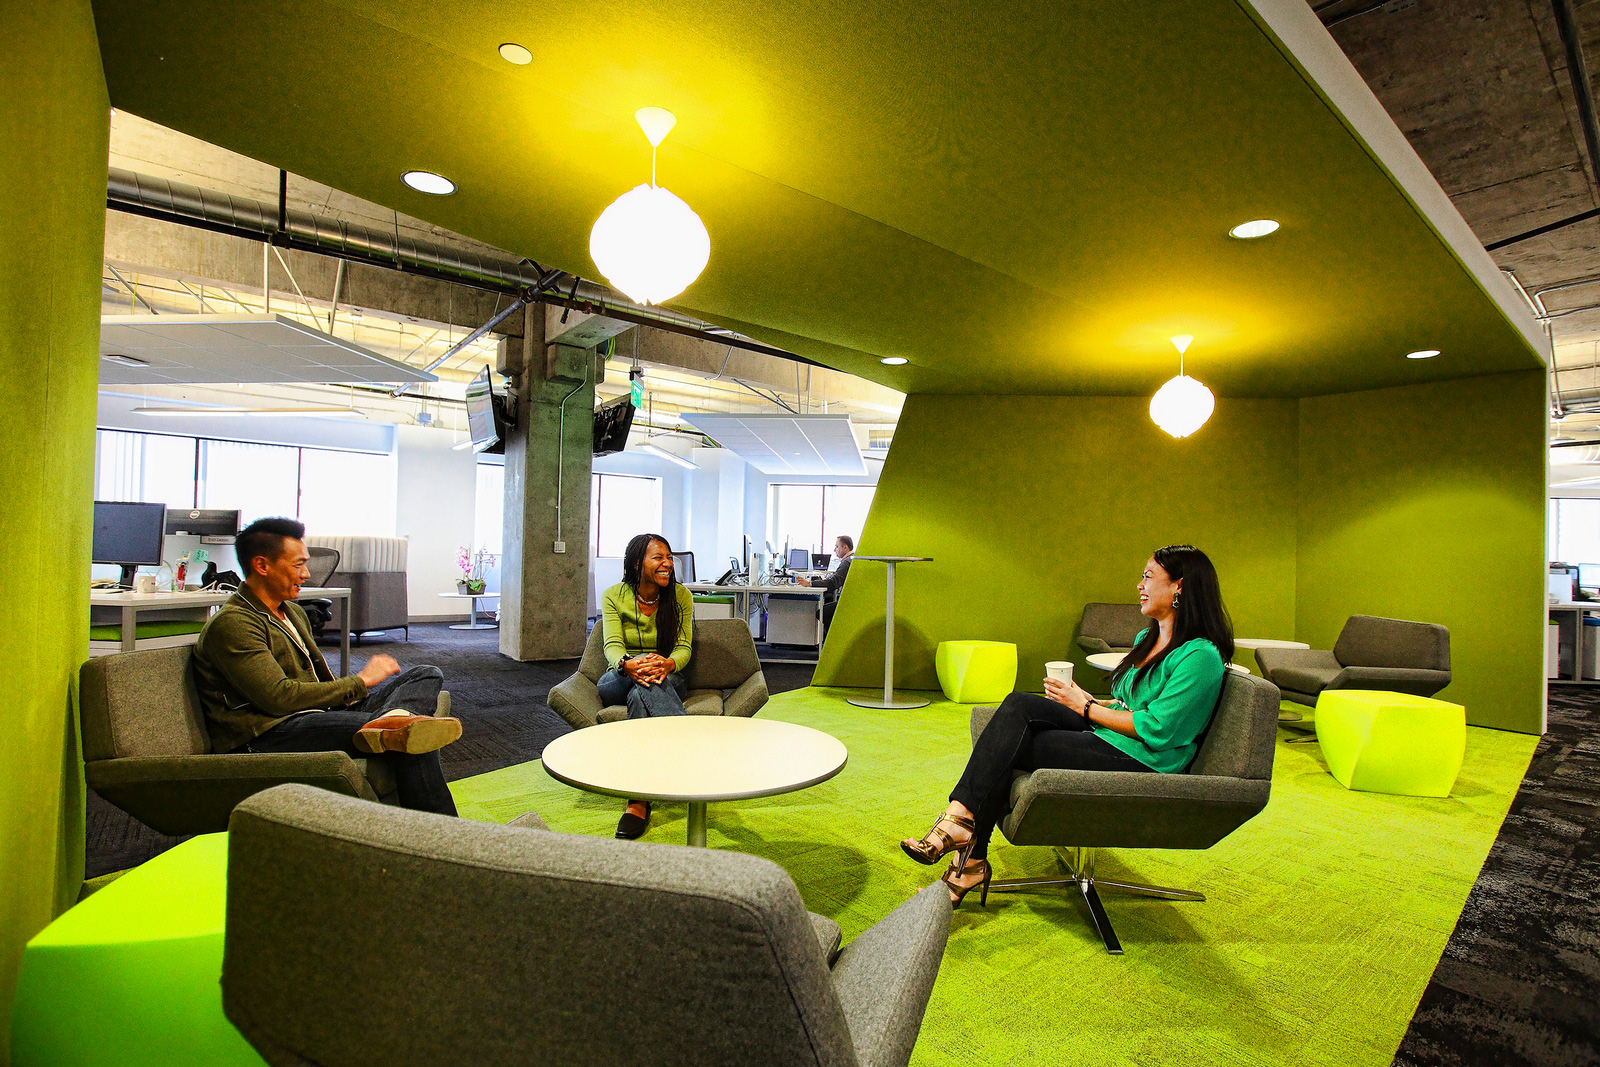 App Dynamic's office green breakout area meeting